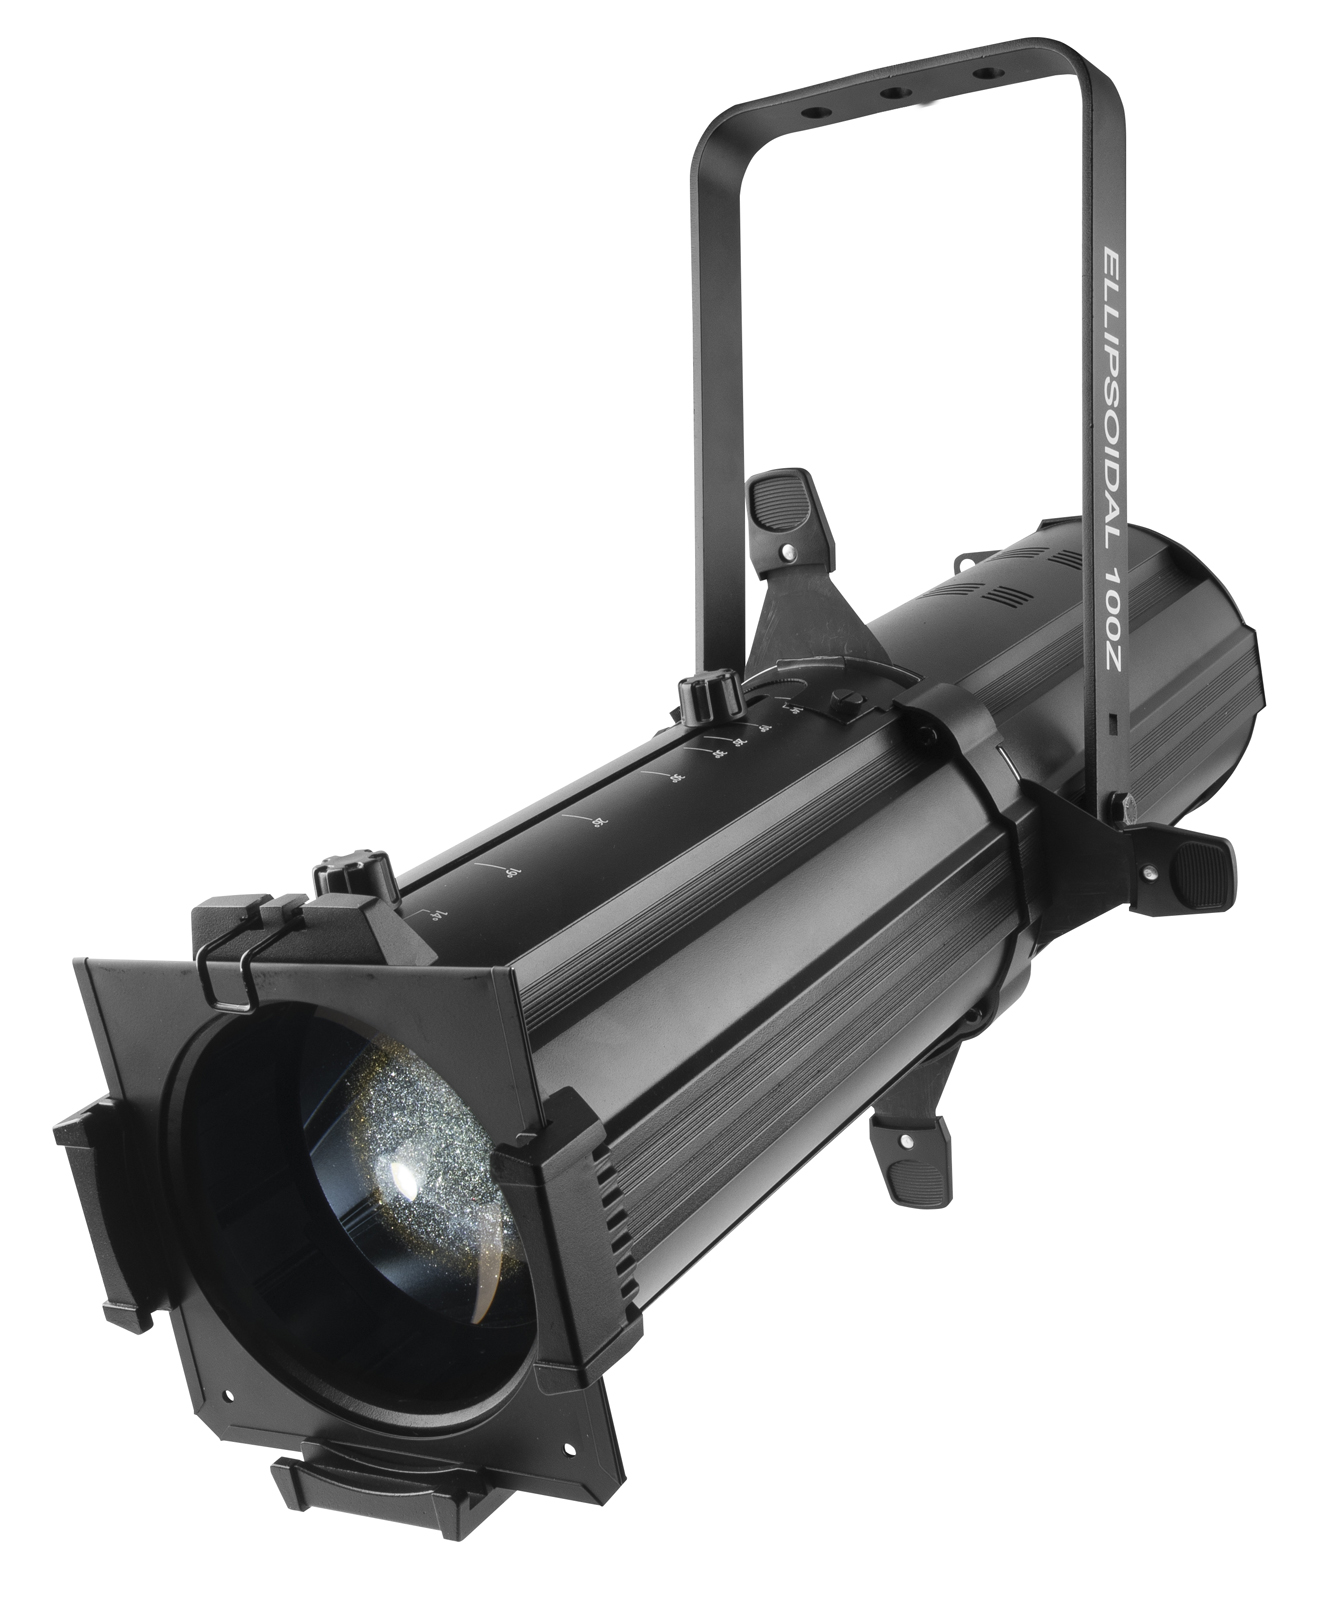 Z Gallerie Light Fixtures: CHAUVET DJ EVEE100Z Powerful Spot Fixture With 100 Watt